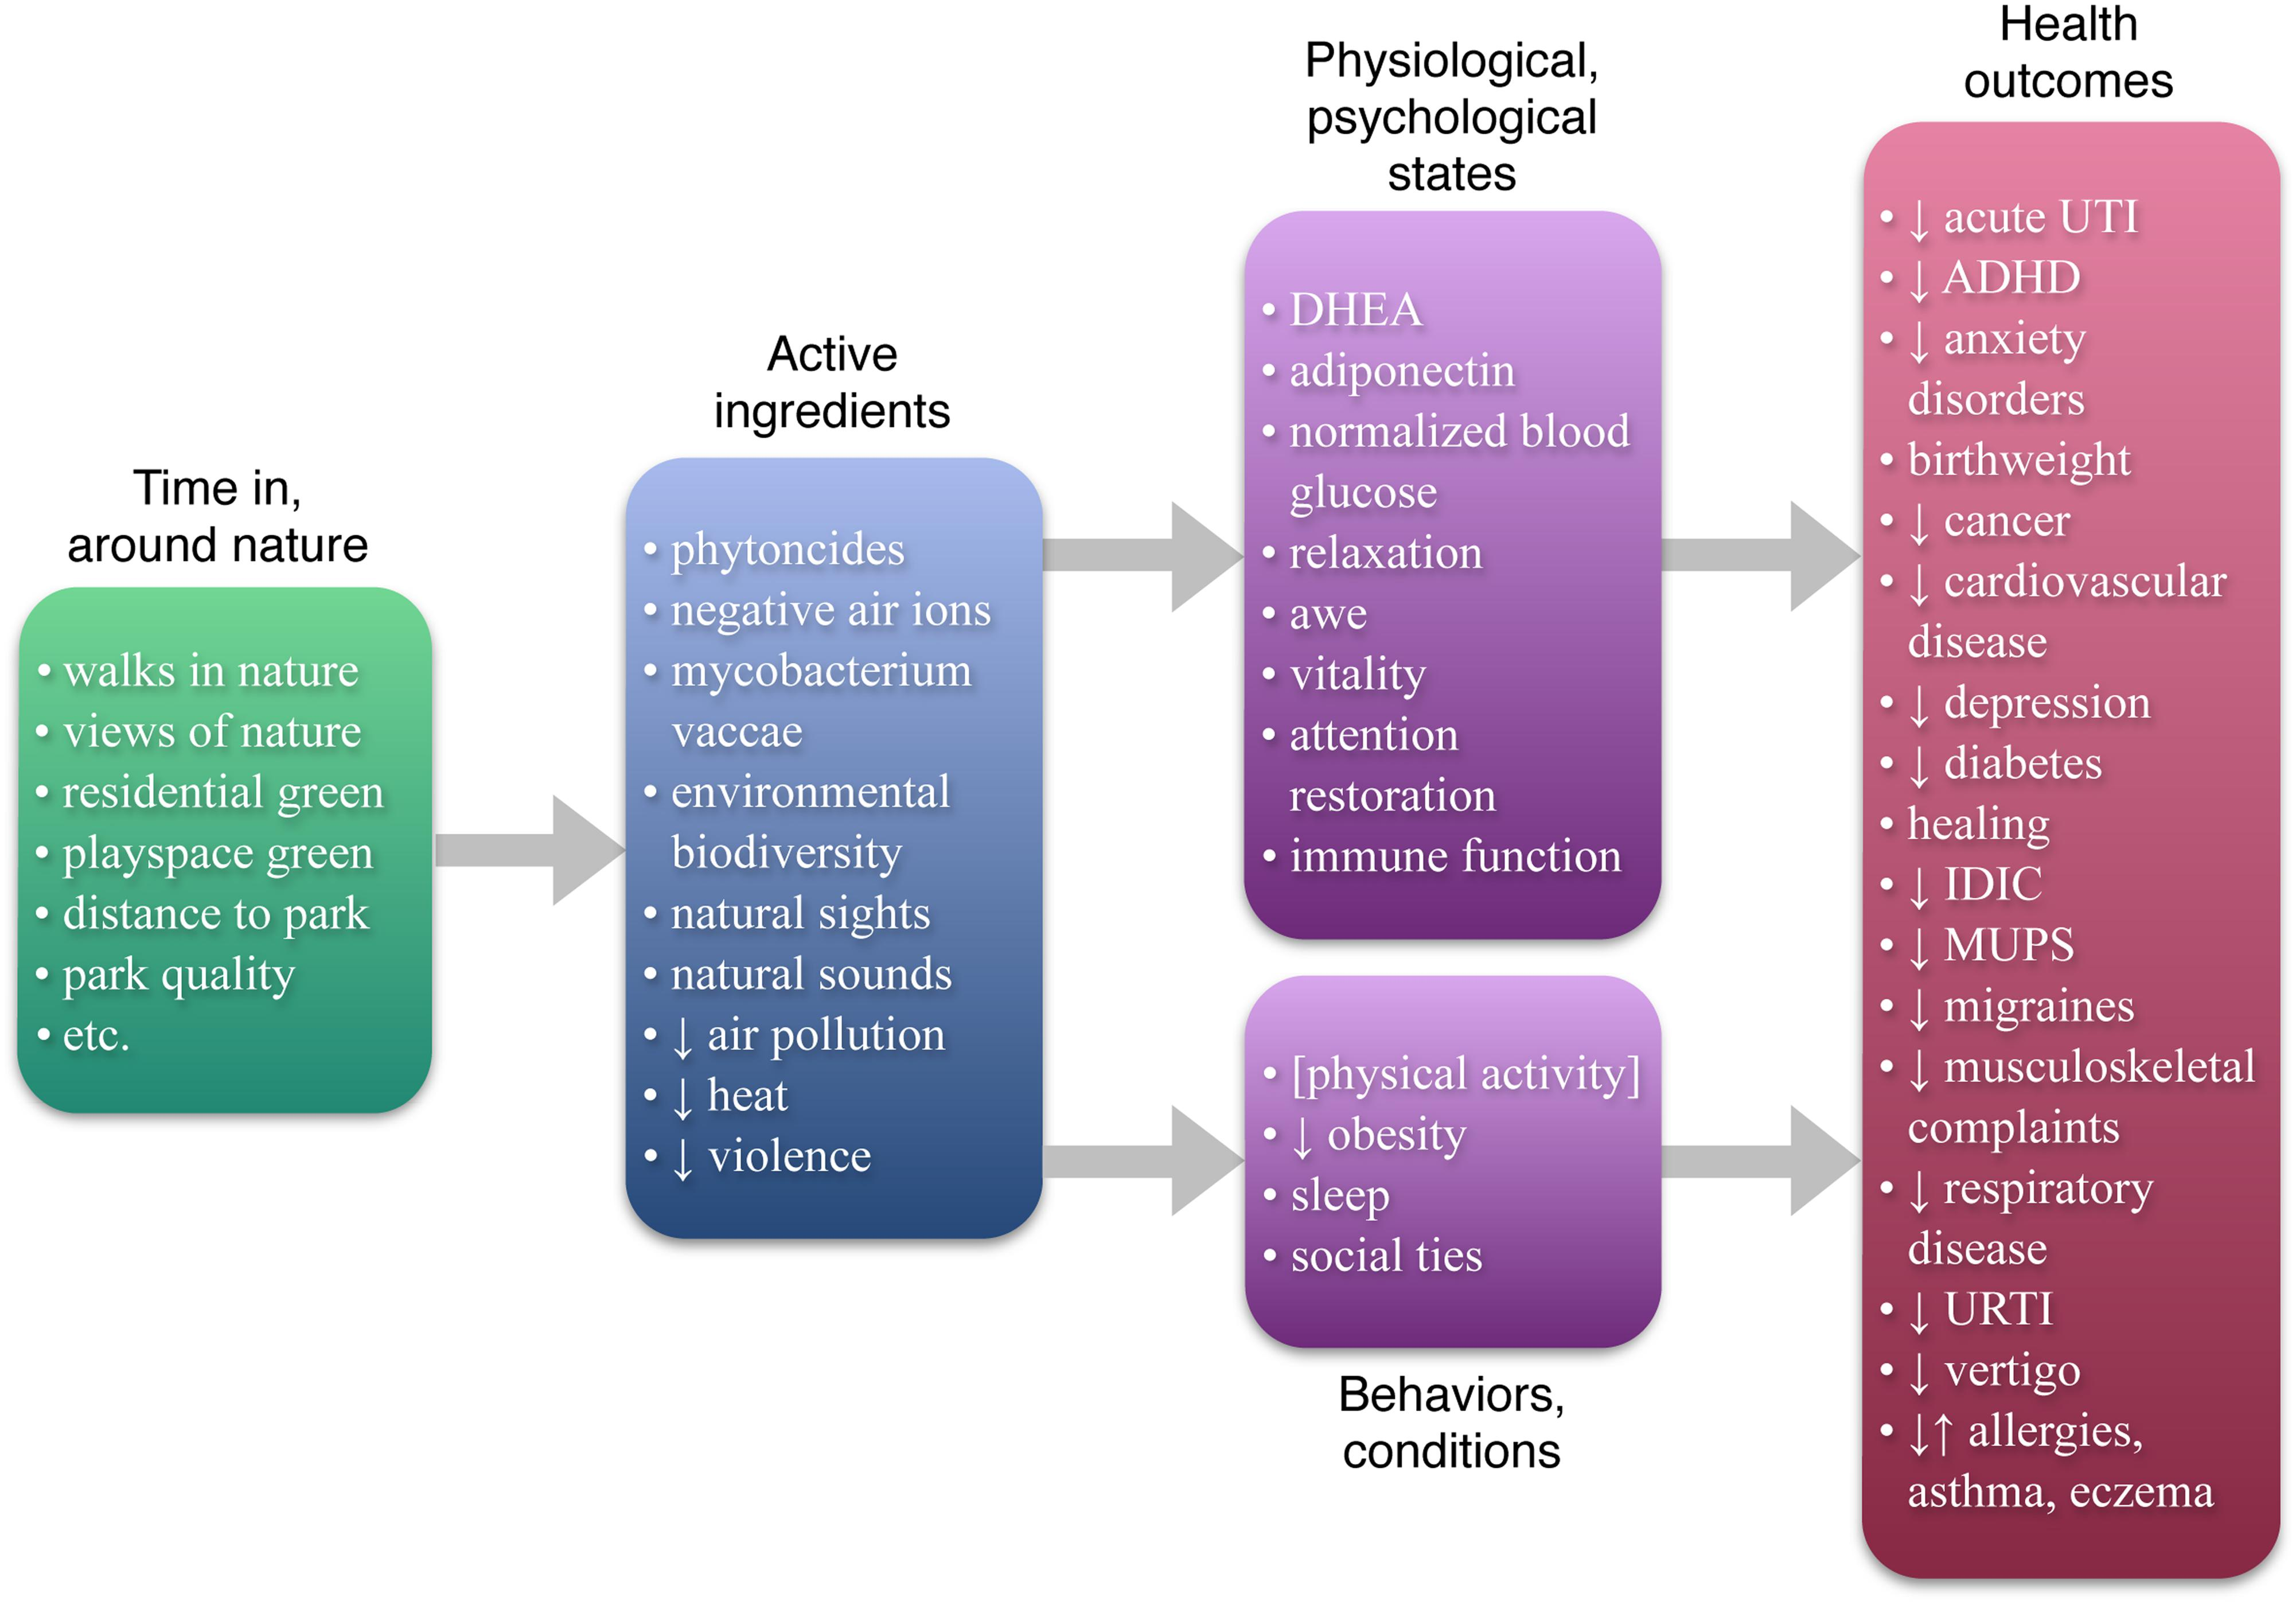 The Nature-Health Link from Frontiers in Psychology